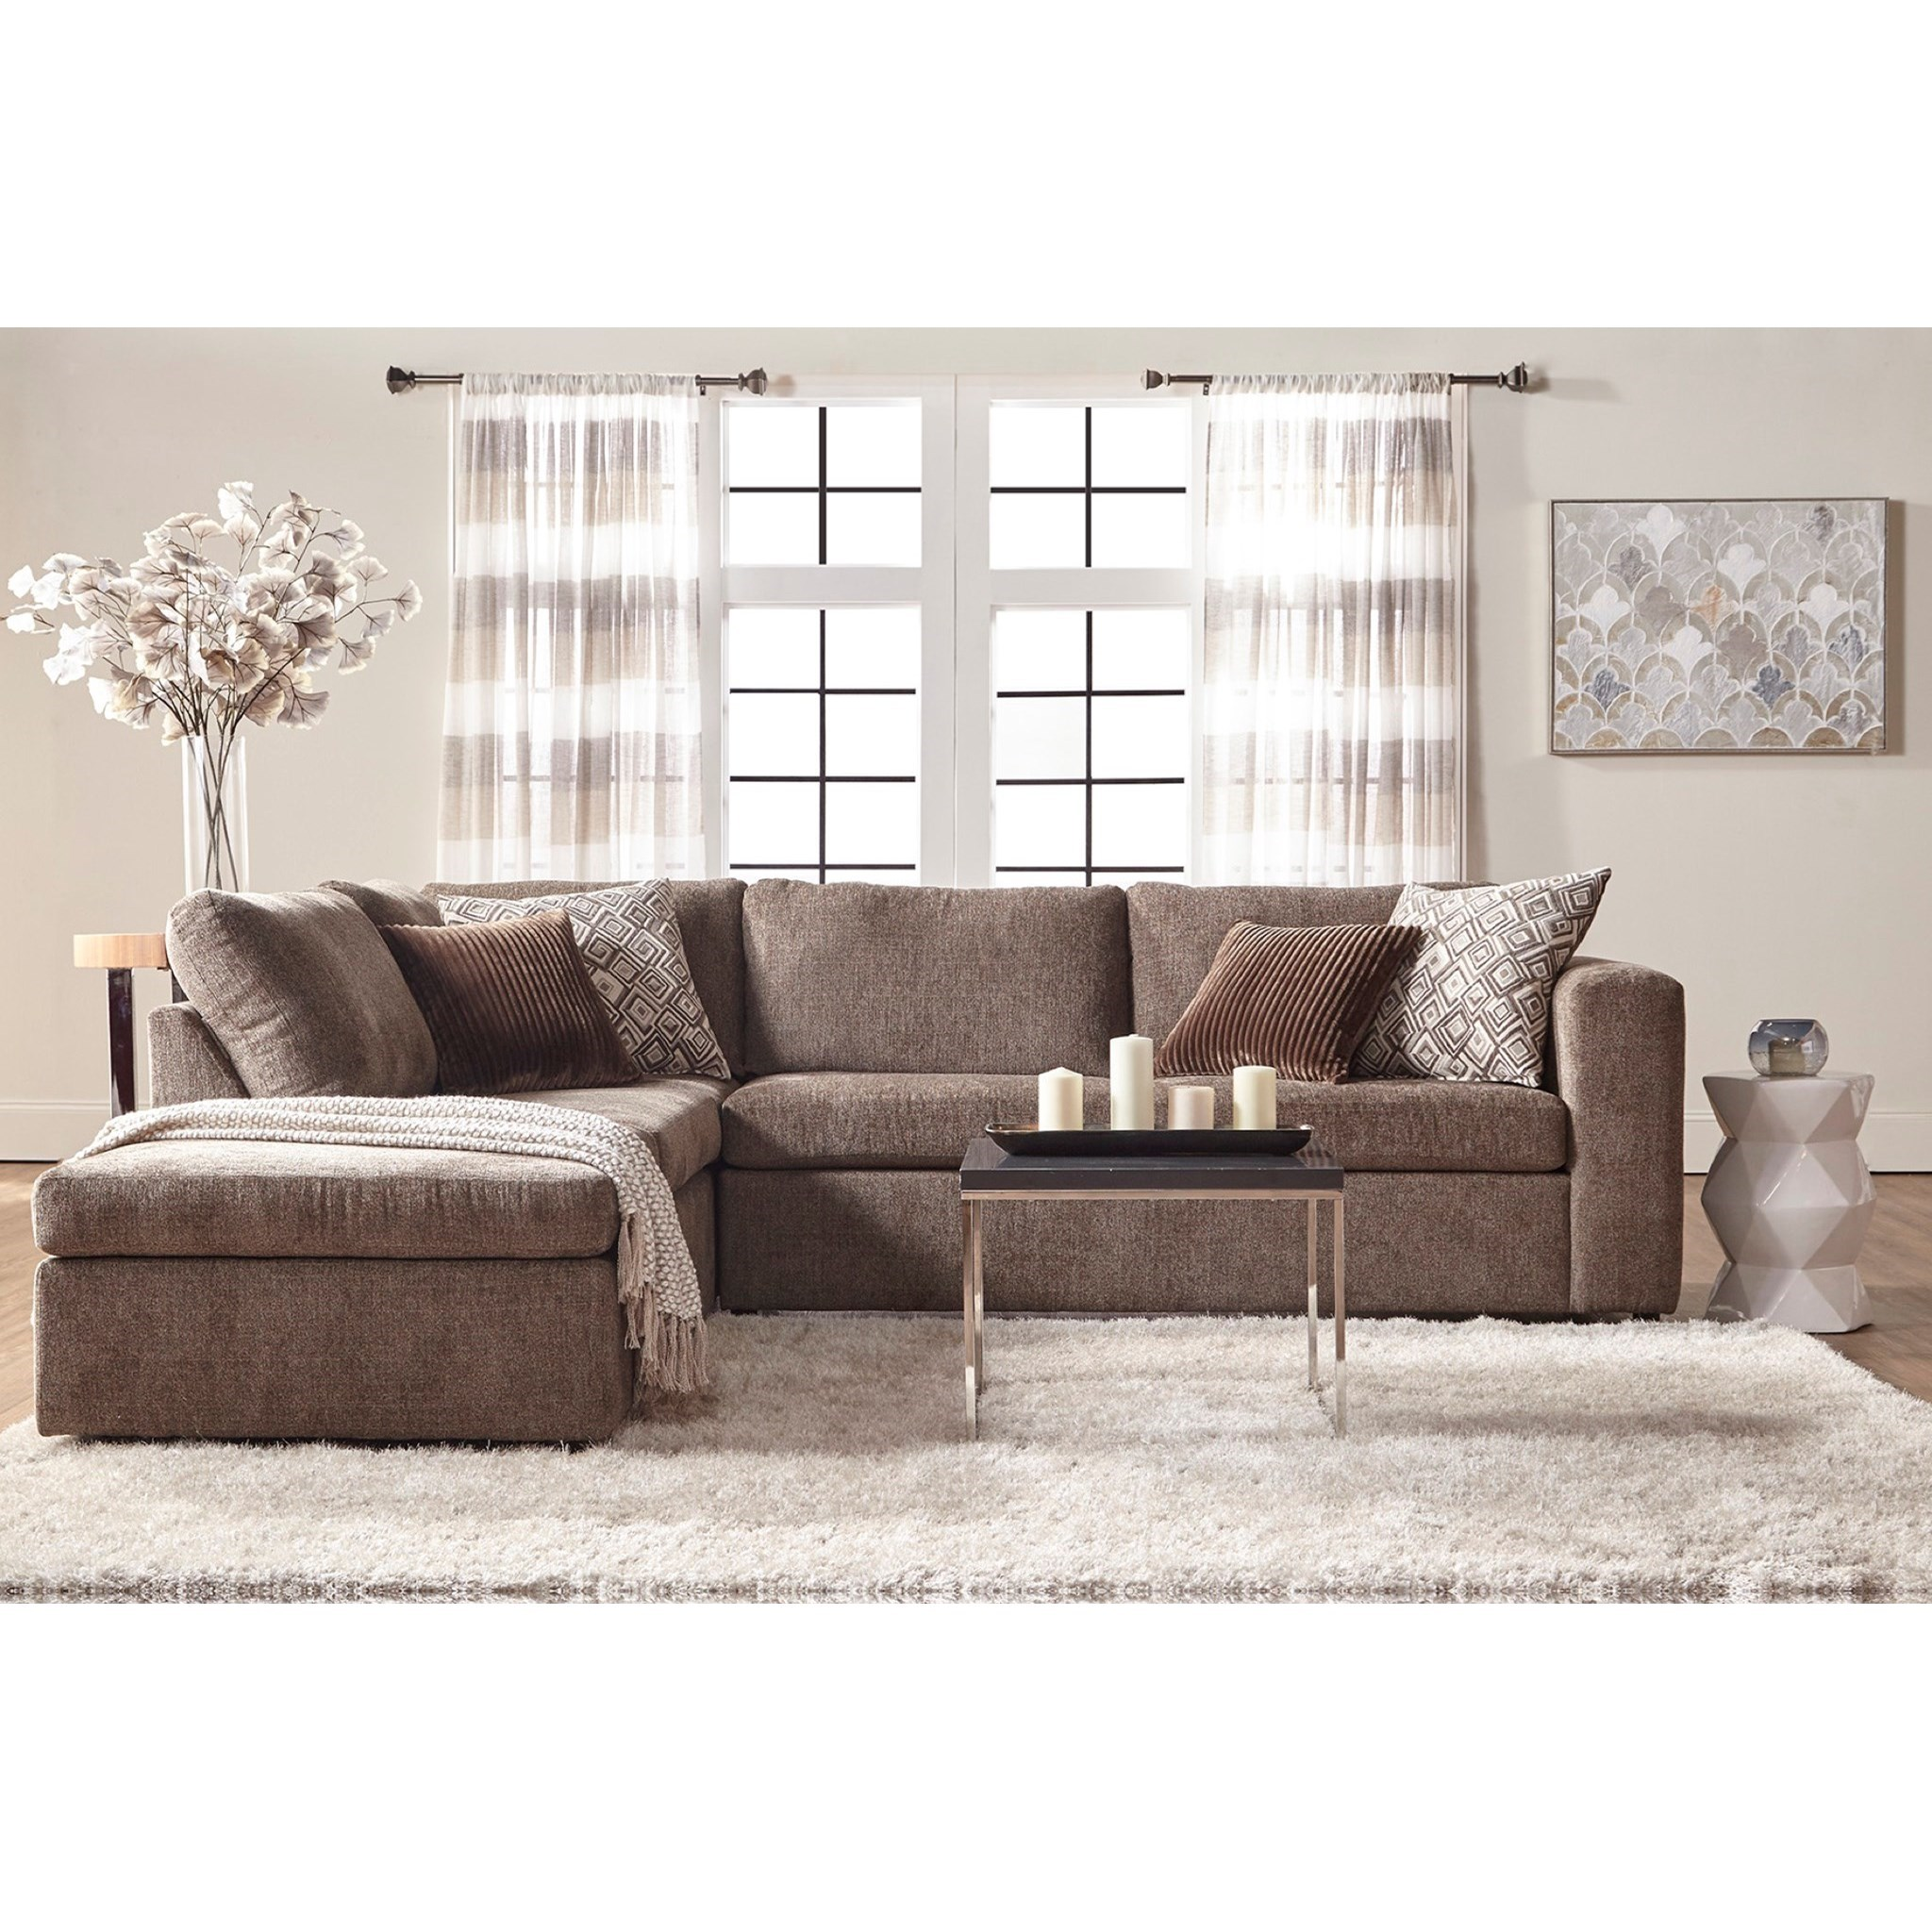 1100 Sectional Sofa with Chaise by Serta Upholstery by Hughes Furniture at Darvin Furniture